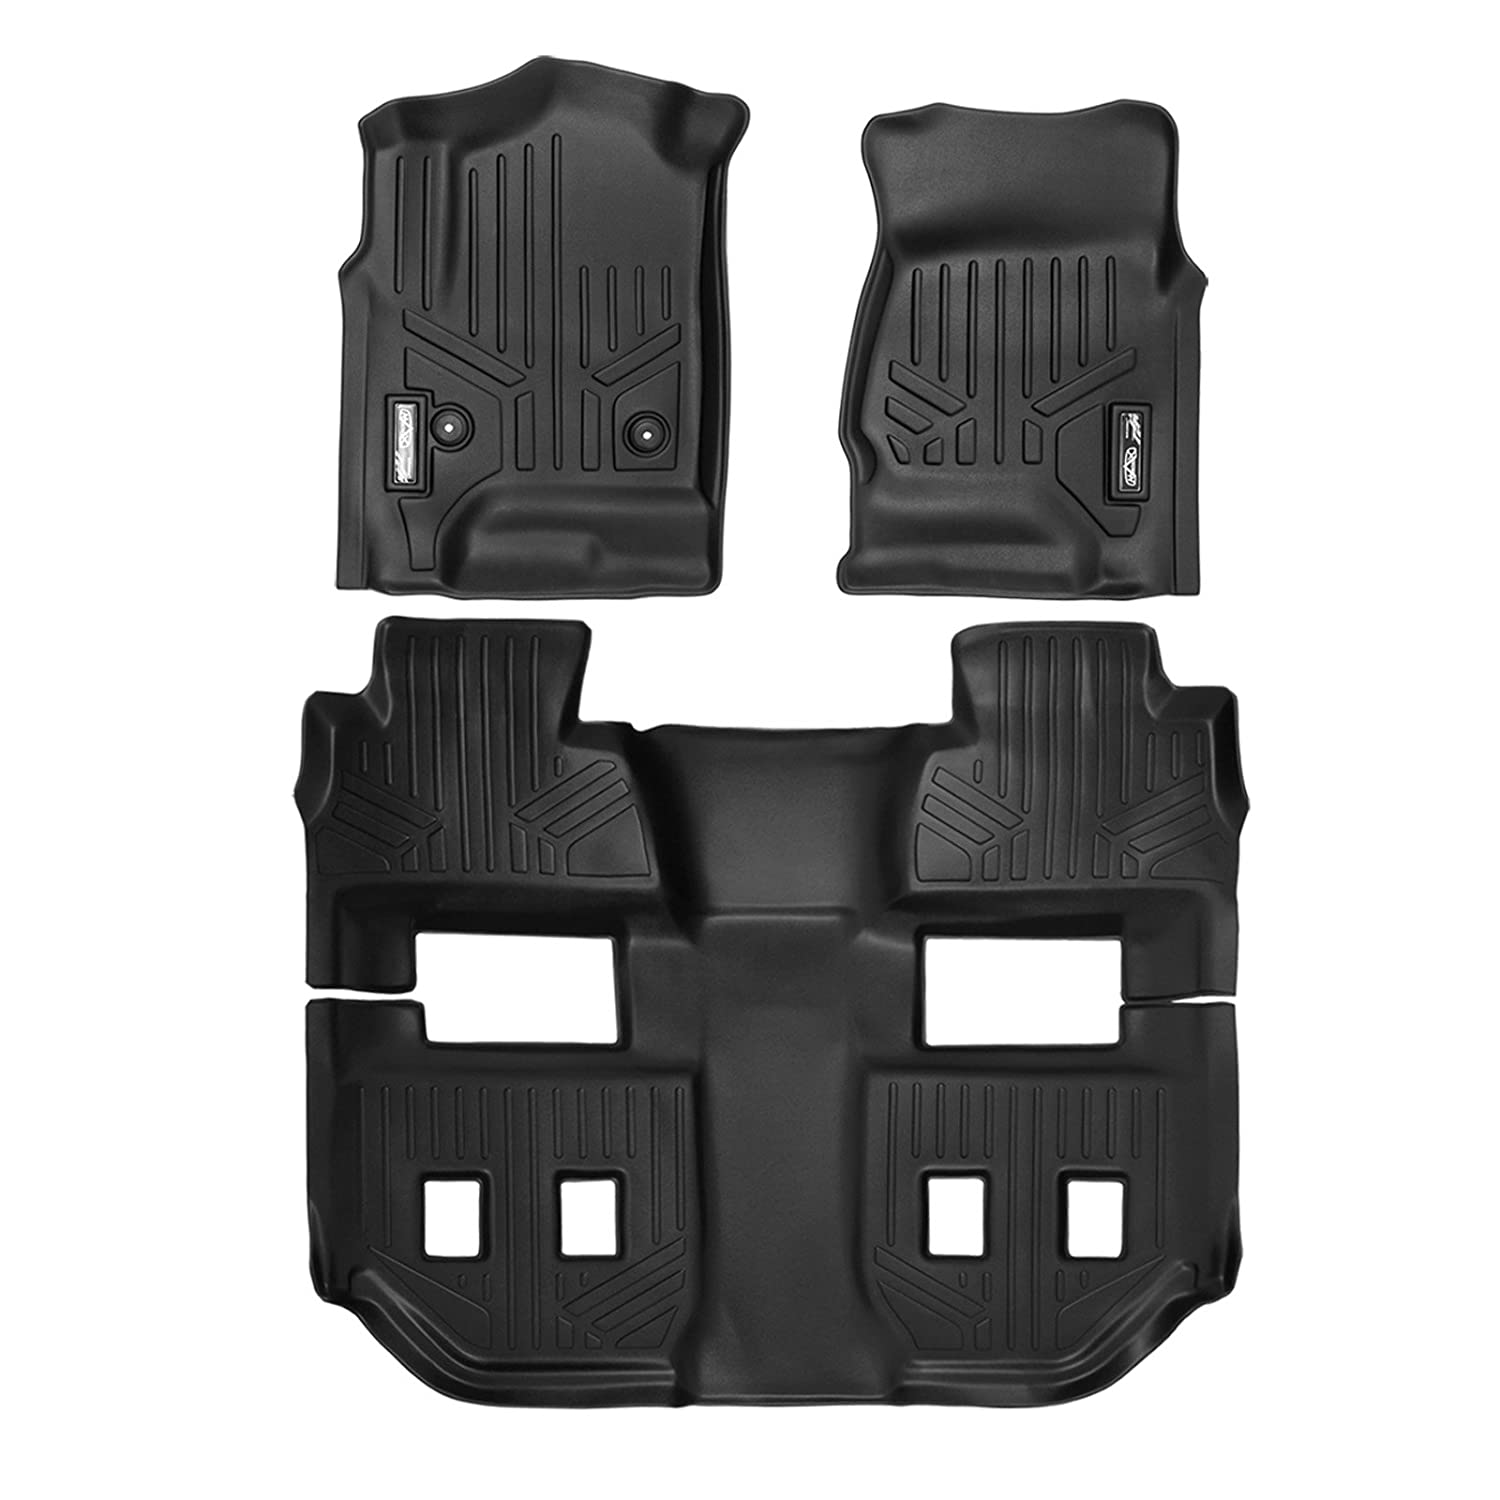 Maxliner USA a0136 / b0159 MAXFLOORMAT All Weatherカスタムフィットフロアマット;前面背面と3行1 pc。;ブラック;カバー2 nd and 3rd Row for Vehicles w /列目バケットシート; B0106442P8  - -